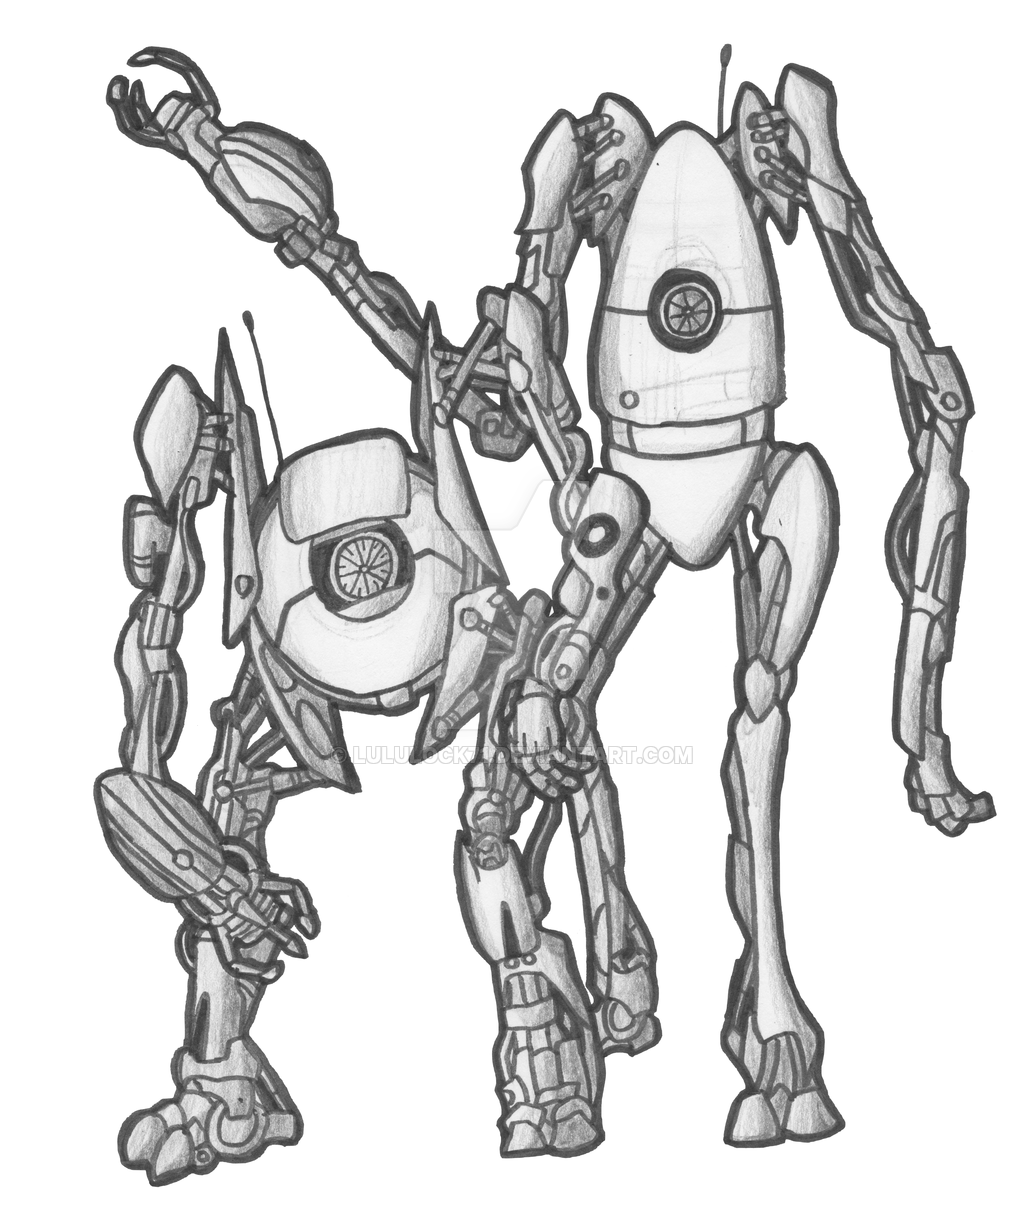 Portal Drawing at GetDrawings.com | Free for personal use Portal ...